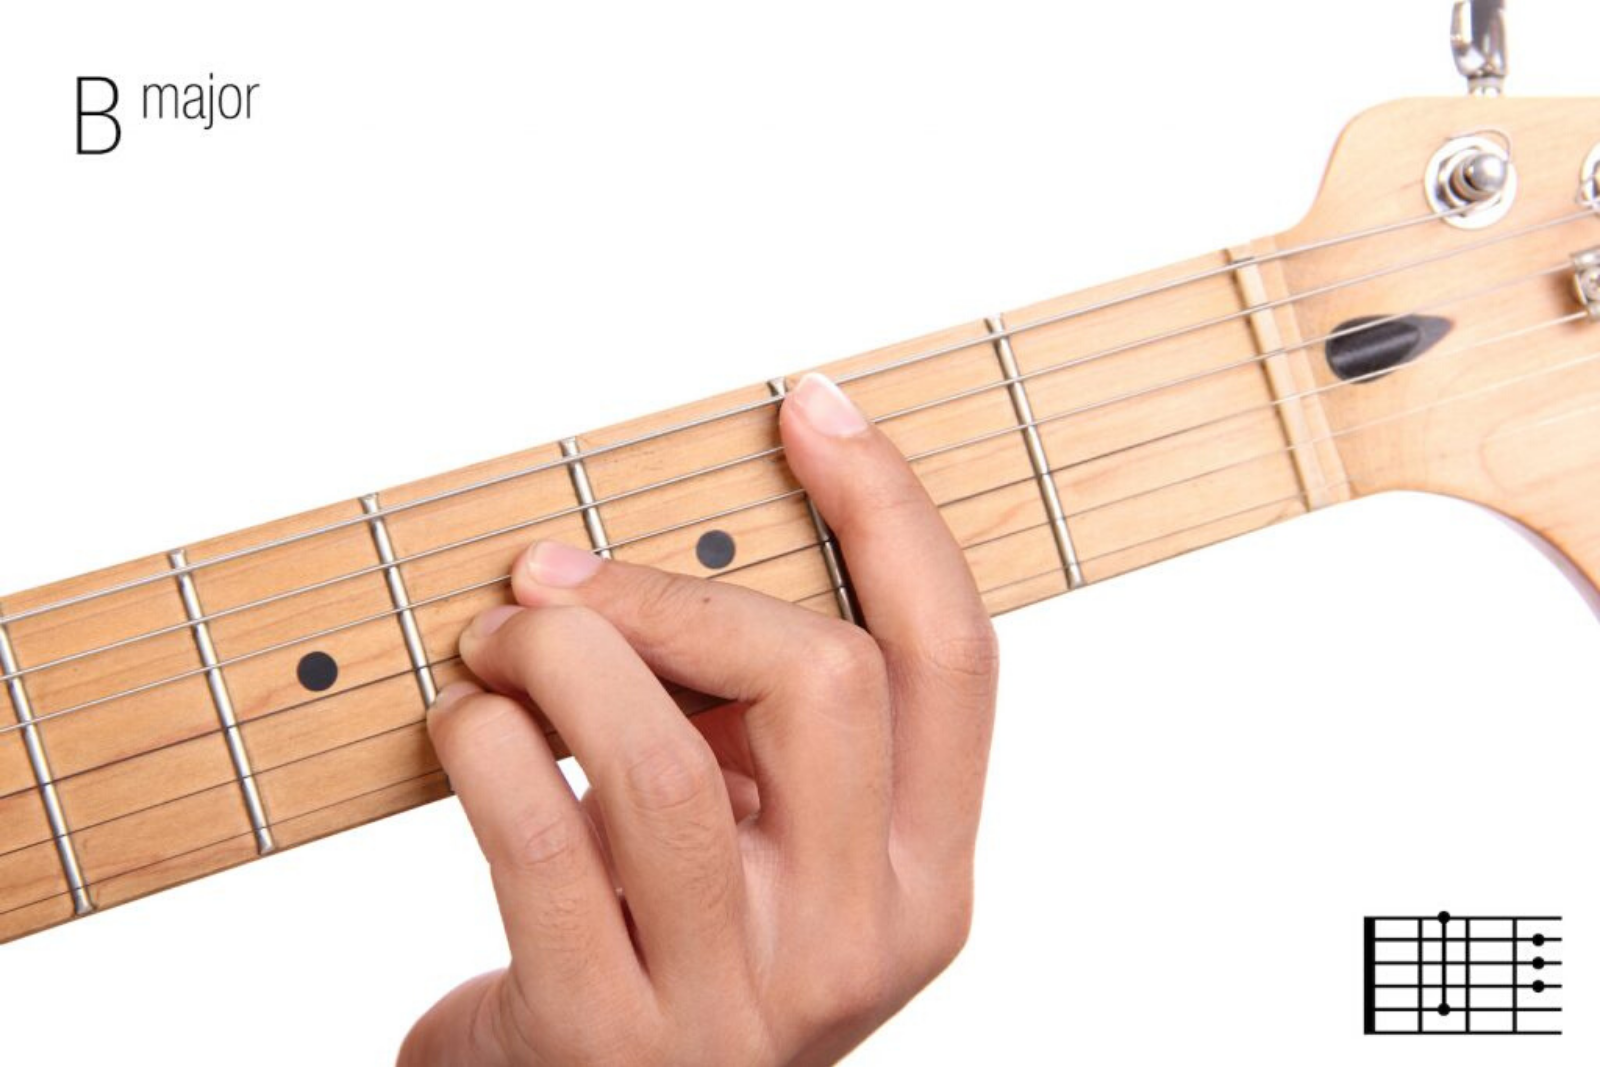 B Major | Mastering The 10 Most Important Guitar Chords For Beginners